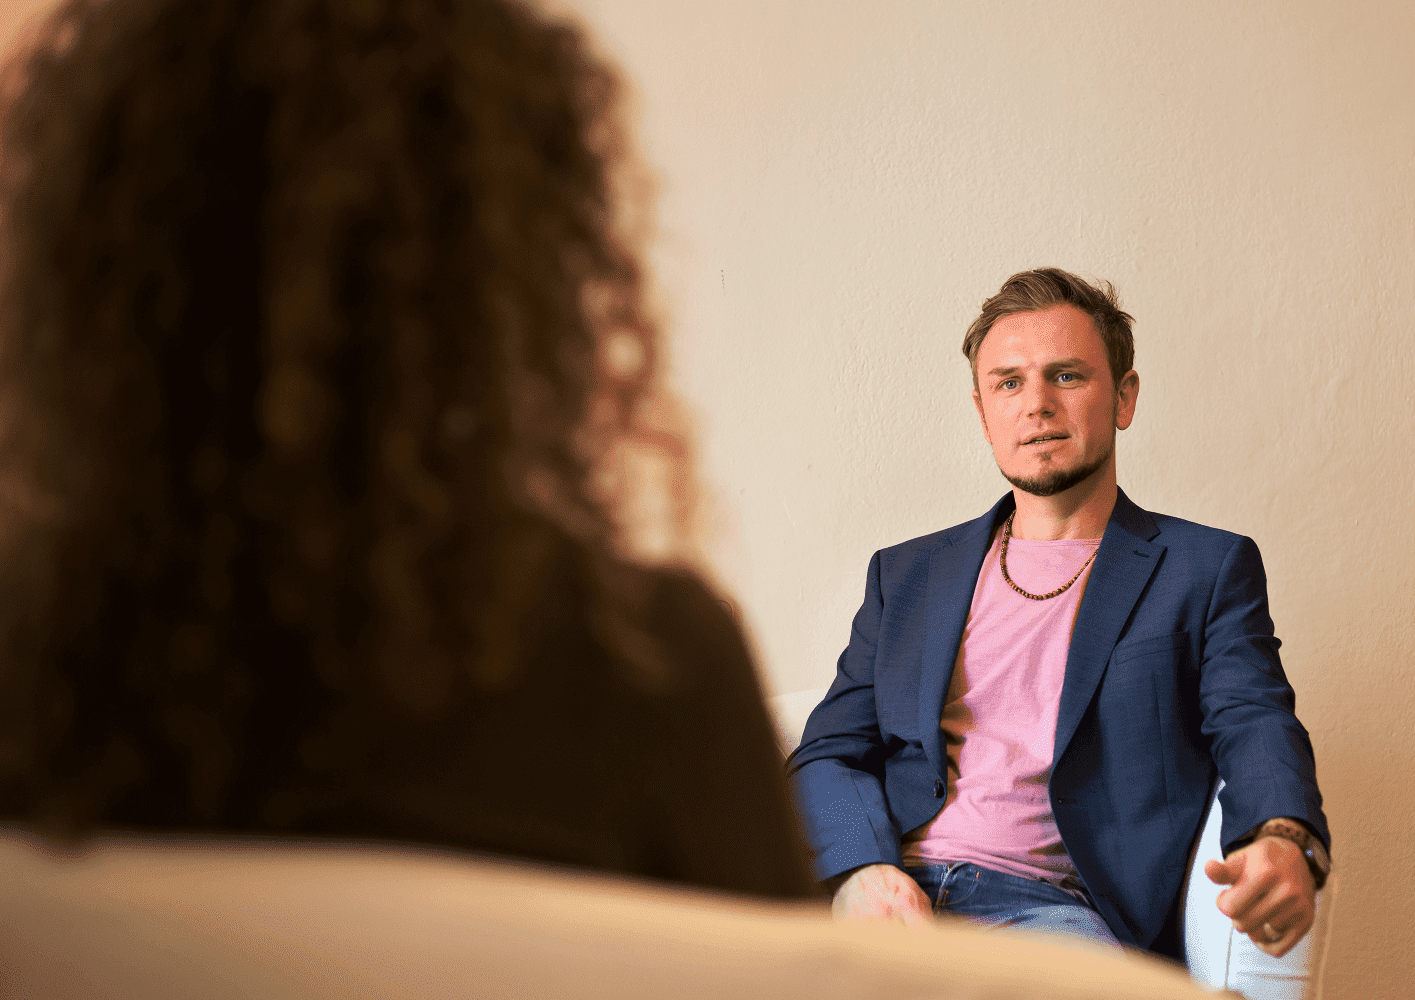 Ludwig Pichler - Psychotherapie - Supervision - Coaching.